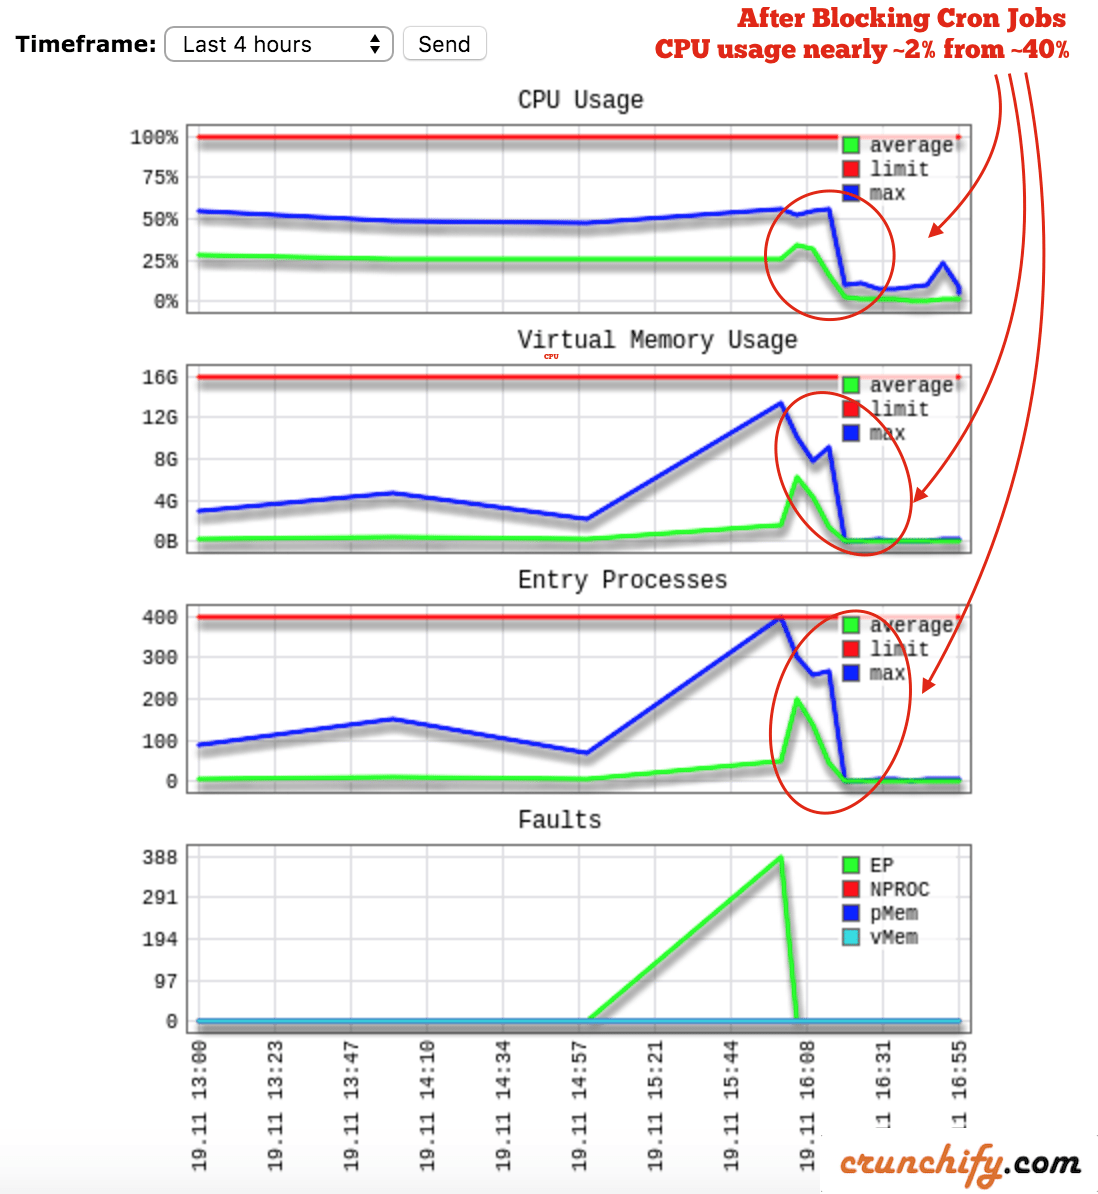 Check Point-1: Memory and CPU usage